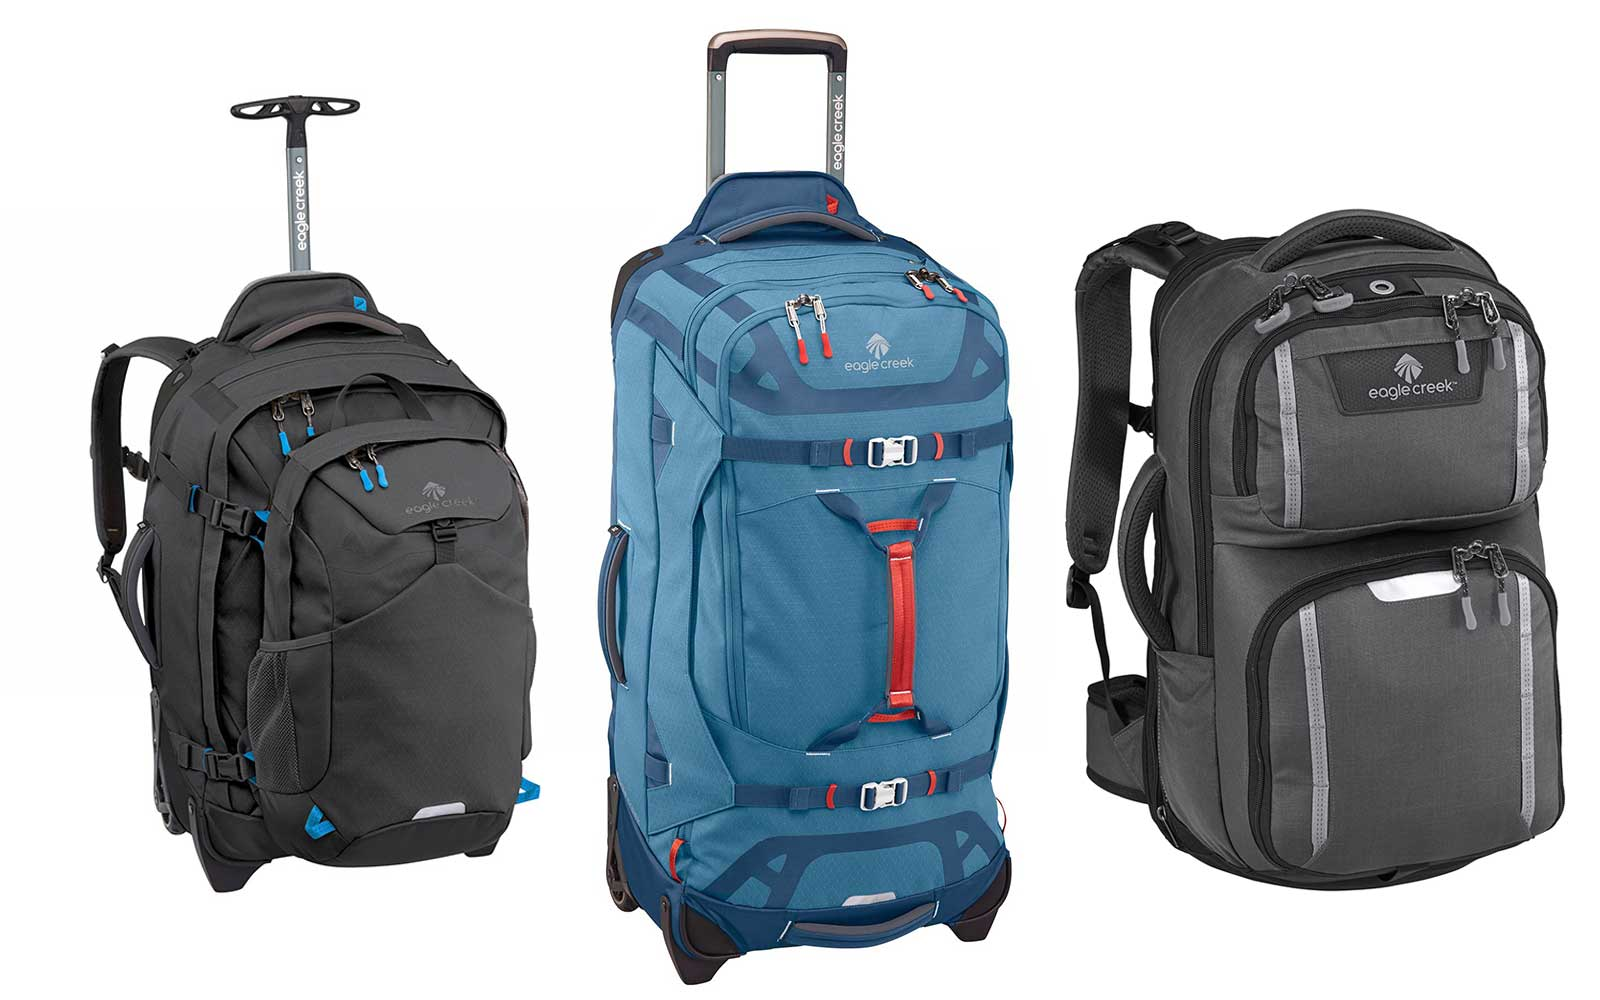 Eagle Creek Luggage and Suitcases